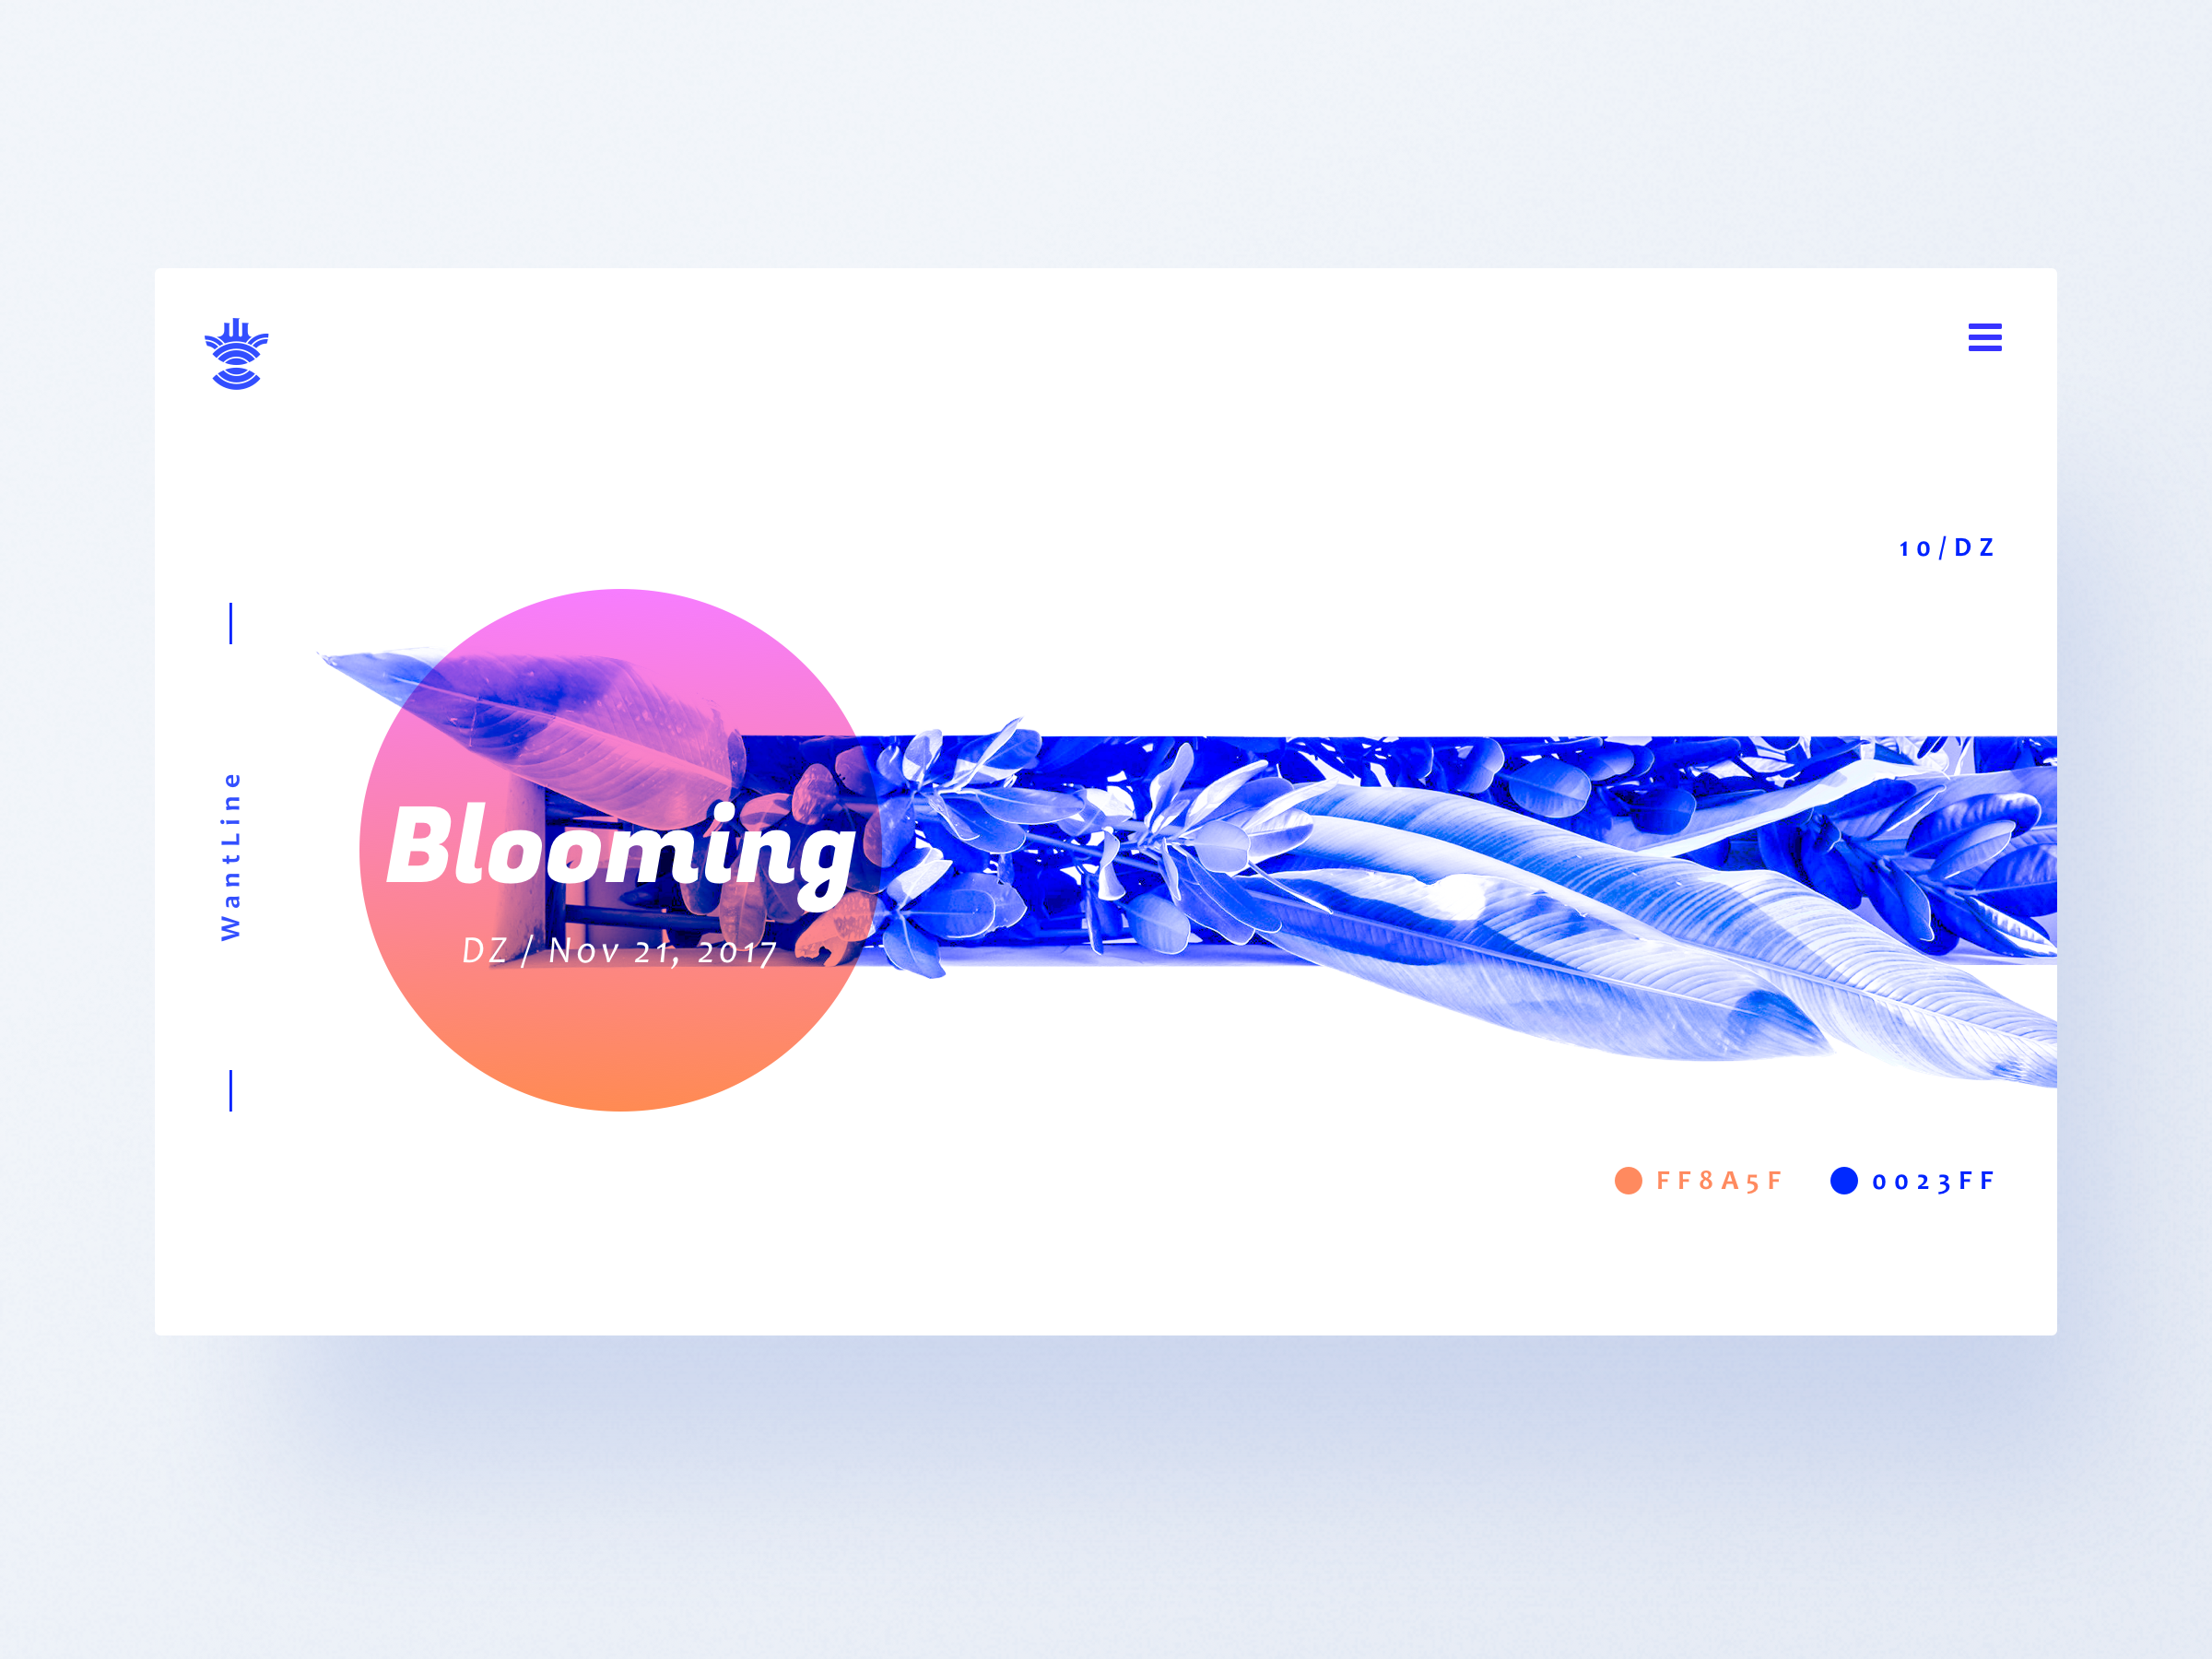 Blooming 3x